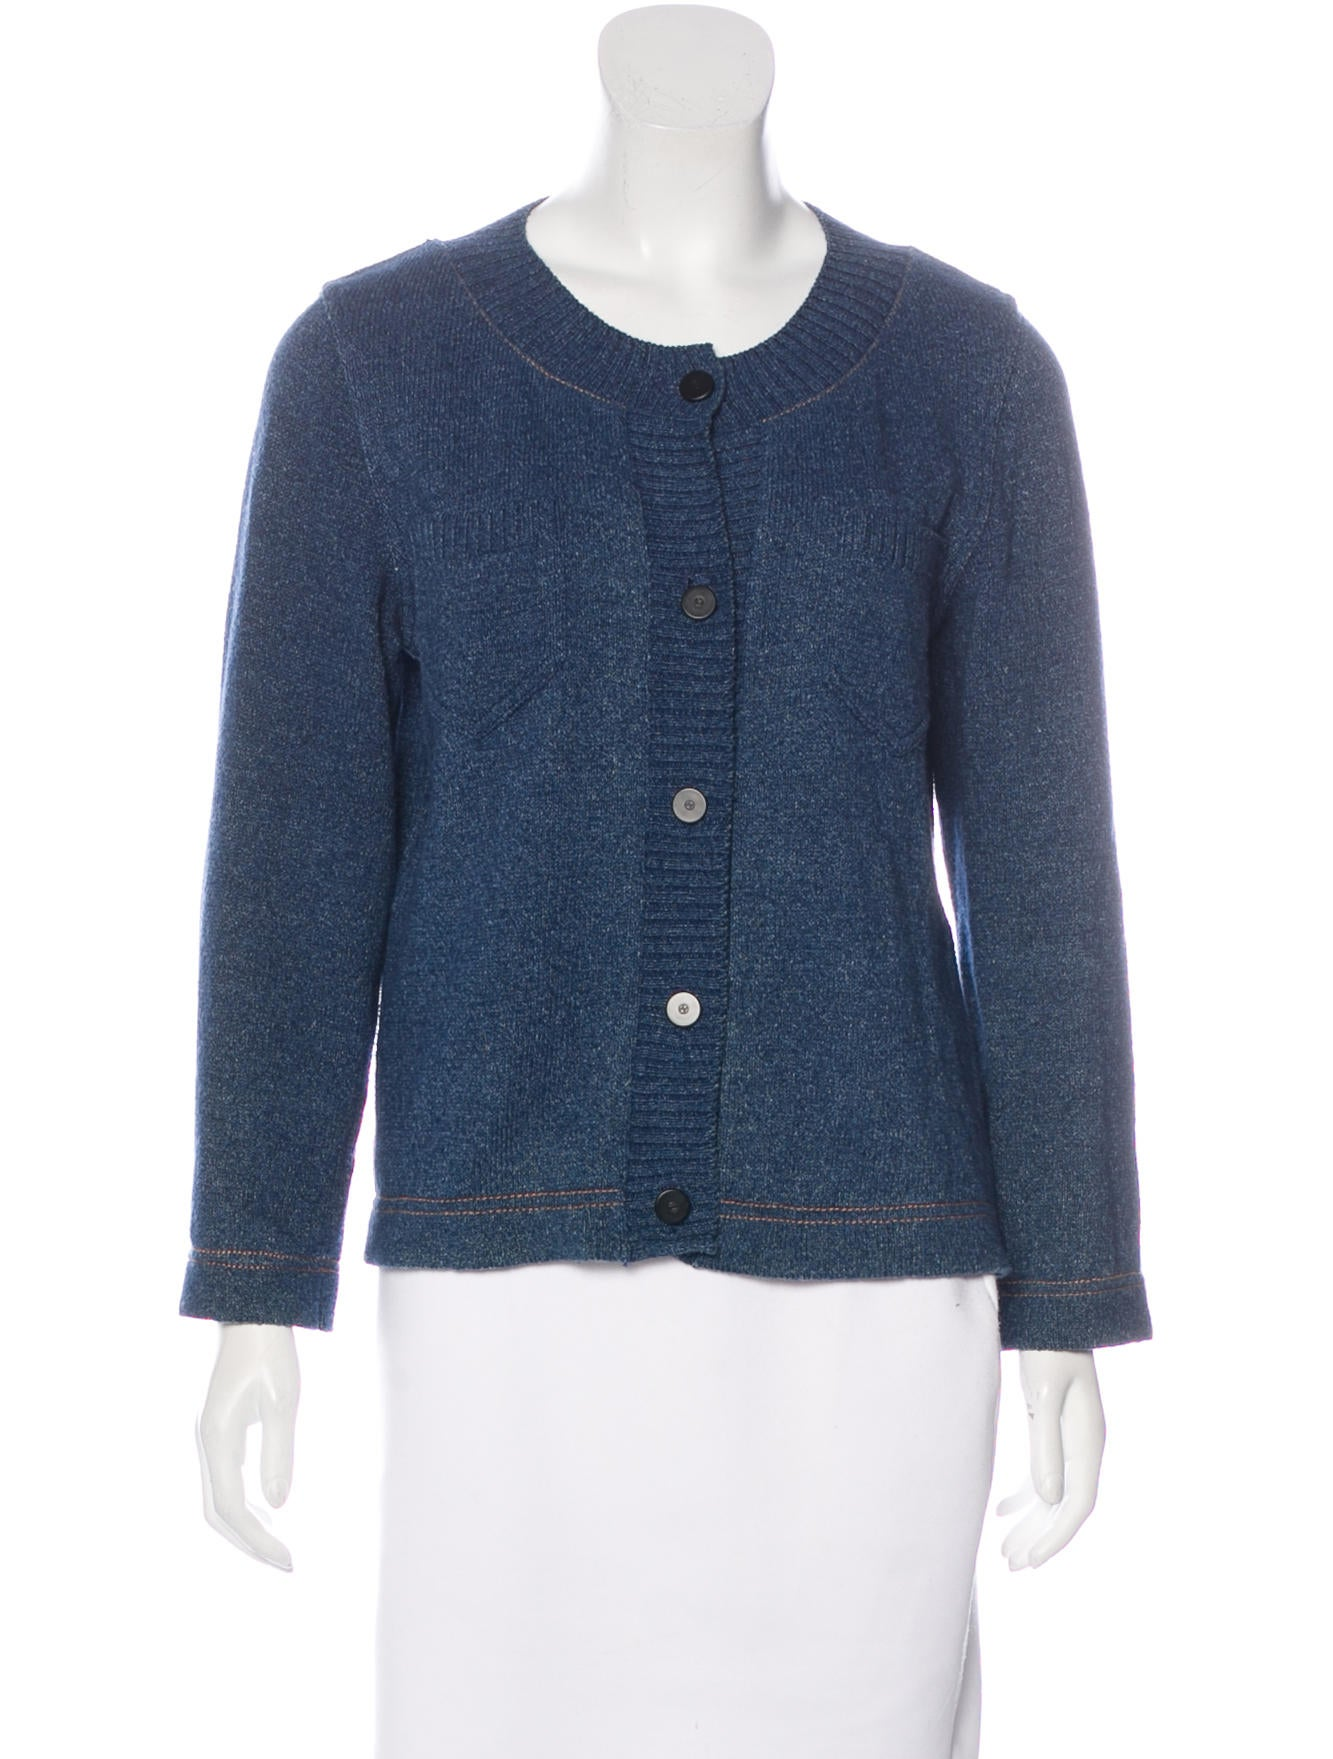 Chanel Knit Long Sleeve Cardigan - Clothing - CHA160992 The RealReal